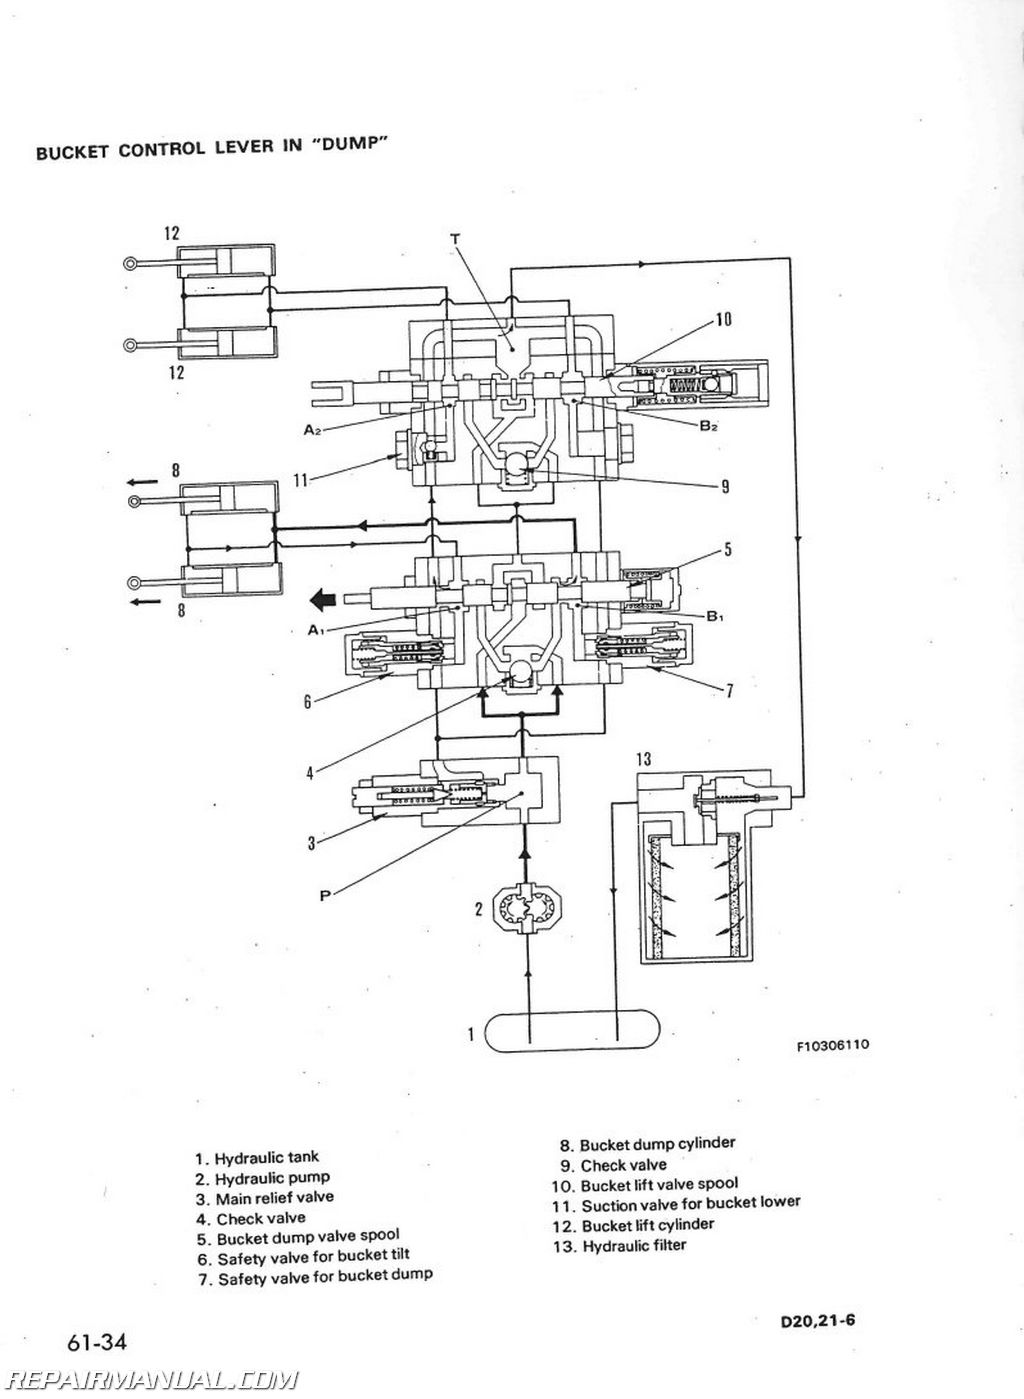 hyster forklift wiring diagram images hyster forklift wiring komatsu forklift wiring diagrams nilzanet